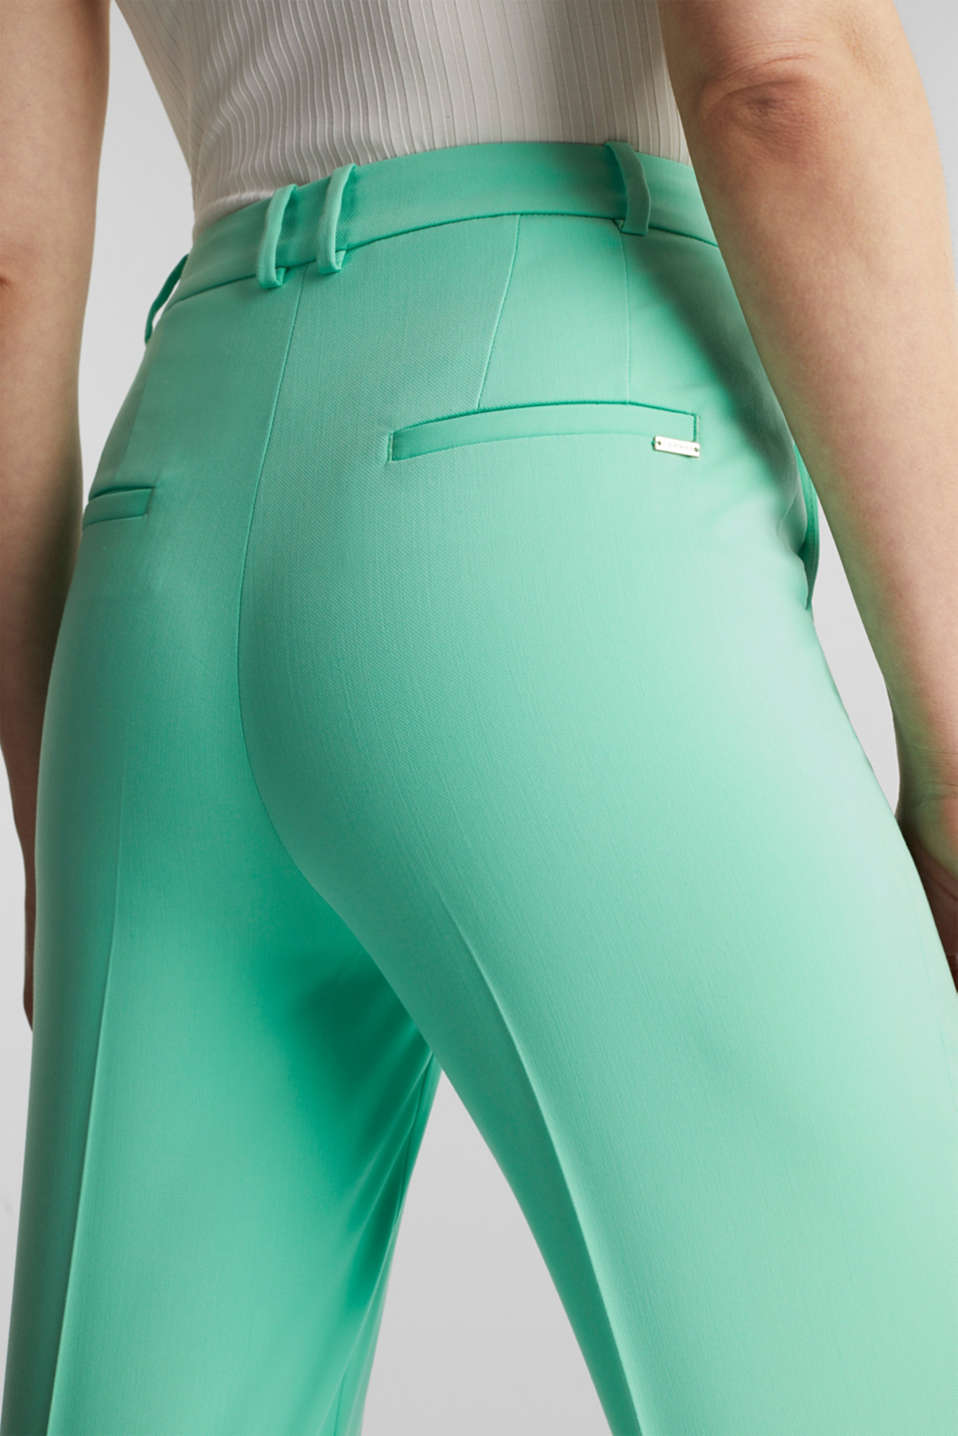 SHIMMER mix + match stretch trousers, LIGHT GREEN, detail image number 2